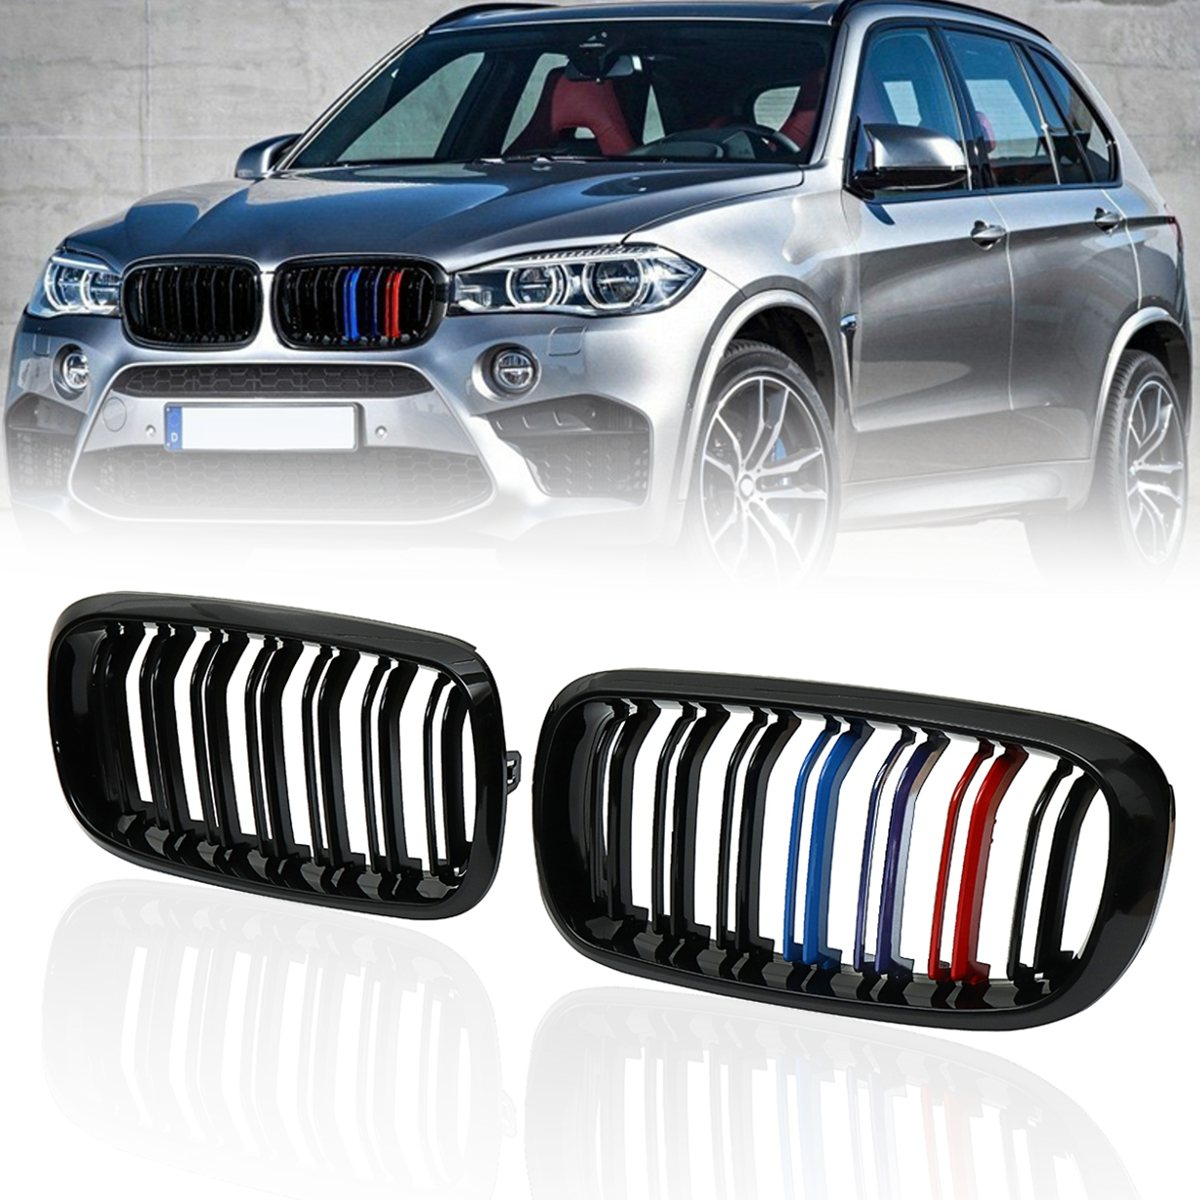 Pair Matte Gloss Black M Color Front Double Slat Kidney Grille For BMW F86 F15 F16 X5 X6 X5M F85 X6M F86 2014 2015 2016 2017 цена 2017